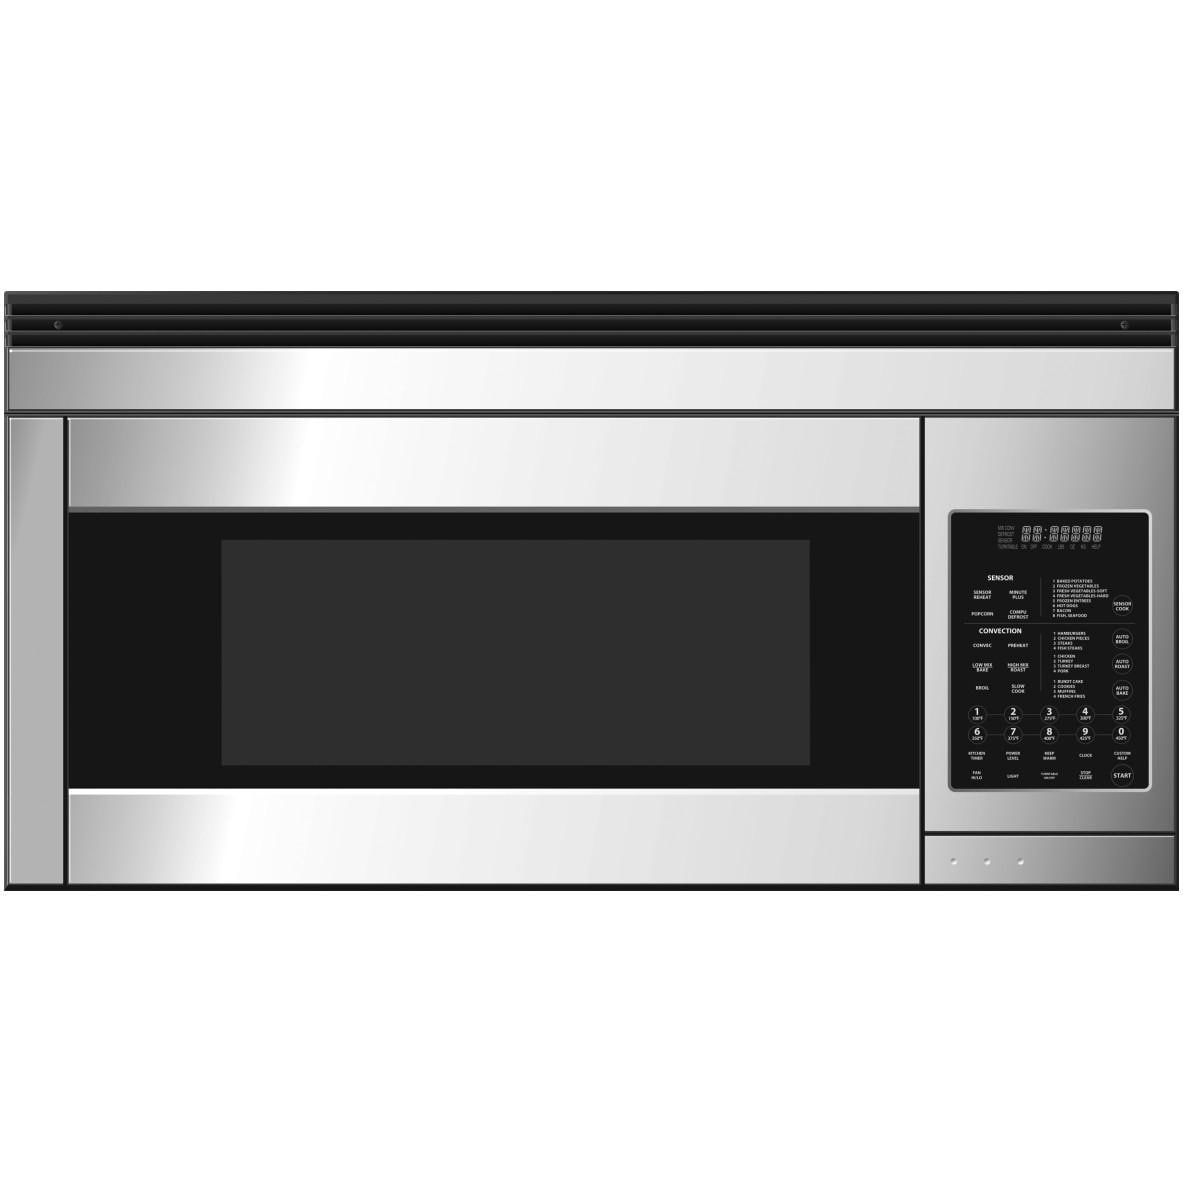 Dcs Microwave Convection Oven: DCS 30-Inch 850-Watt Over-The-Range Convection Microwave